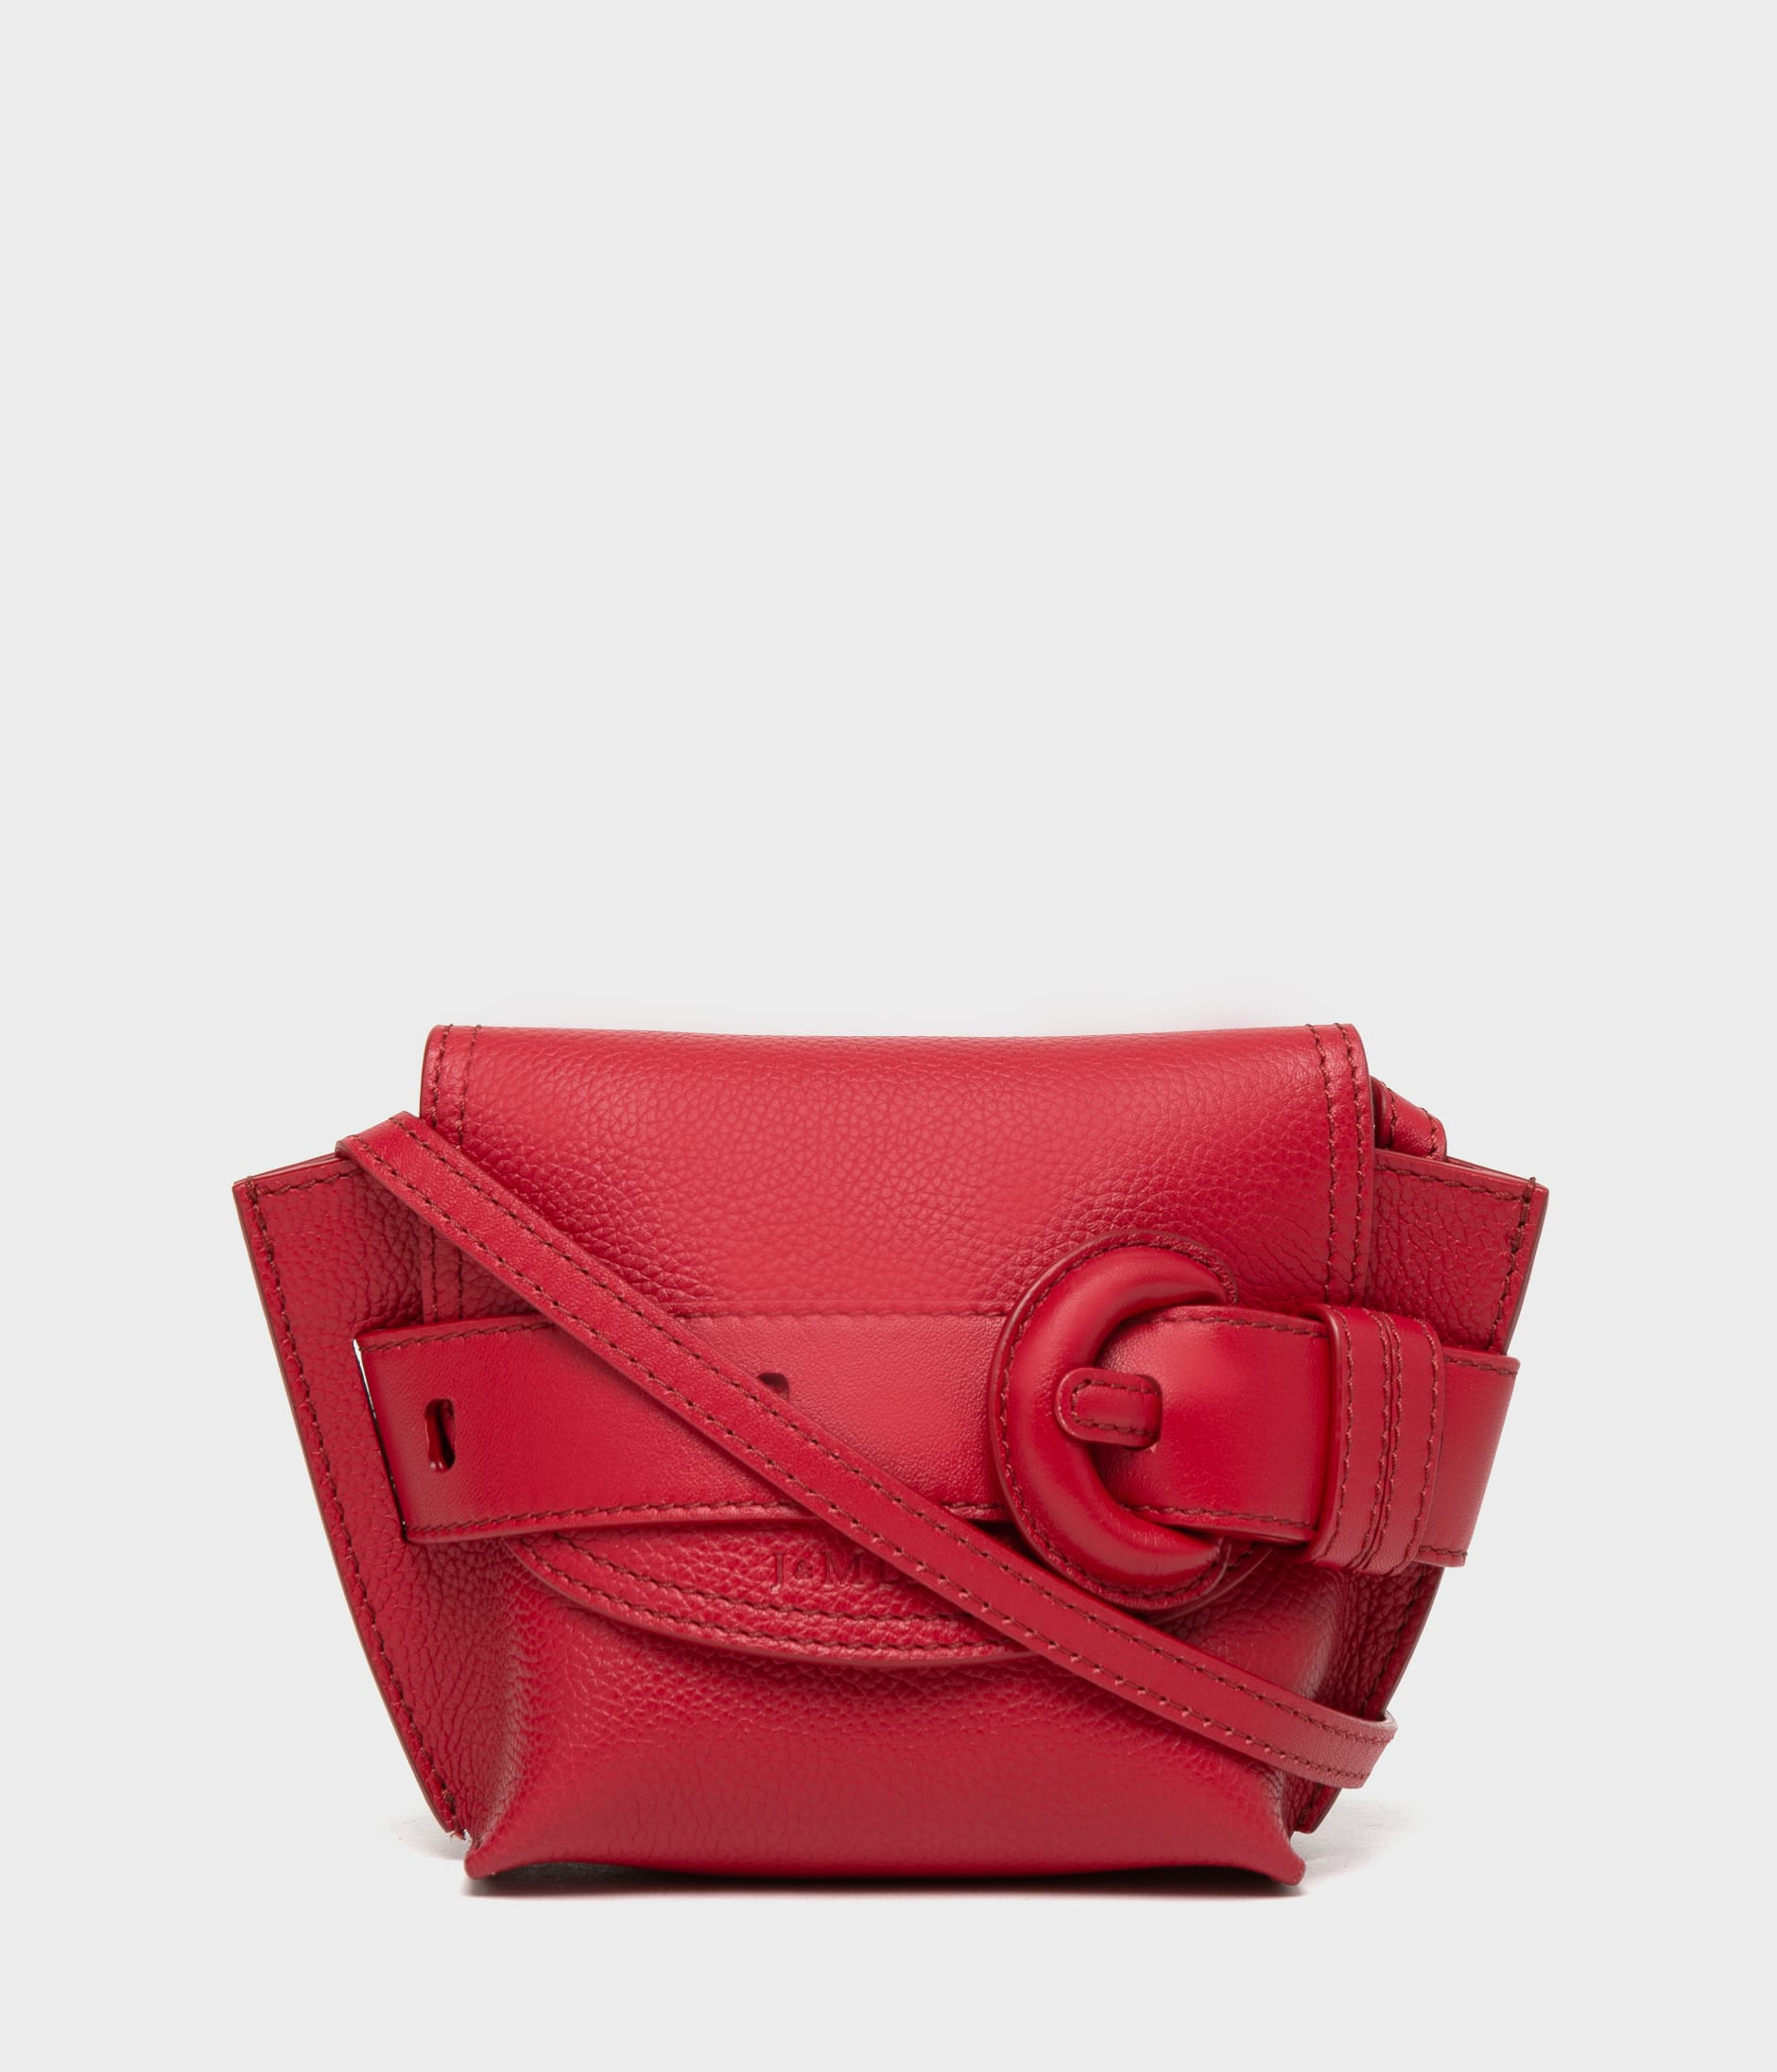 BELT BAG NANNO 詳細画像 ROUGE 2